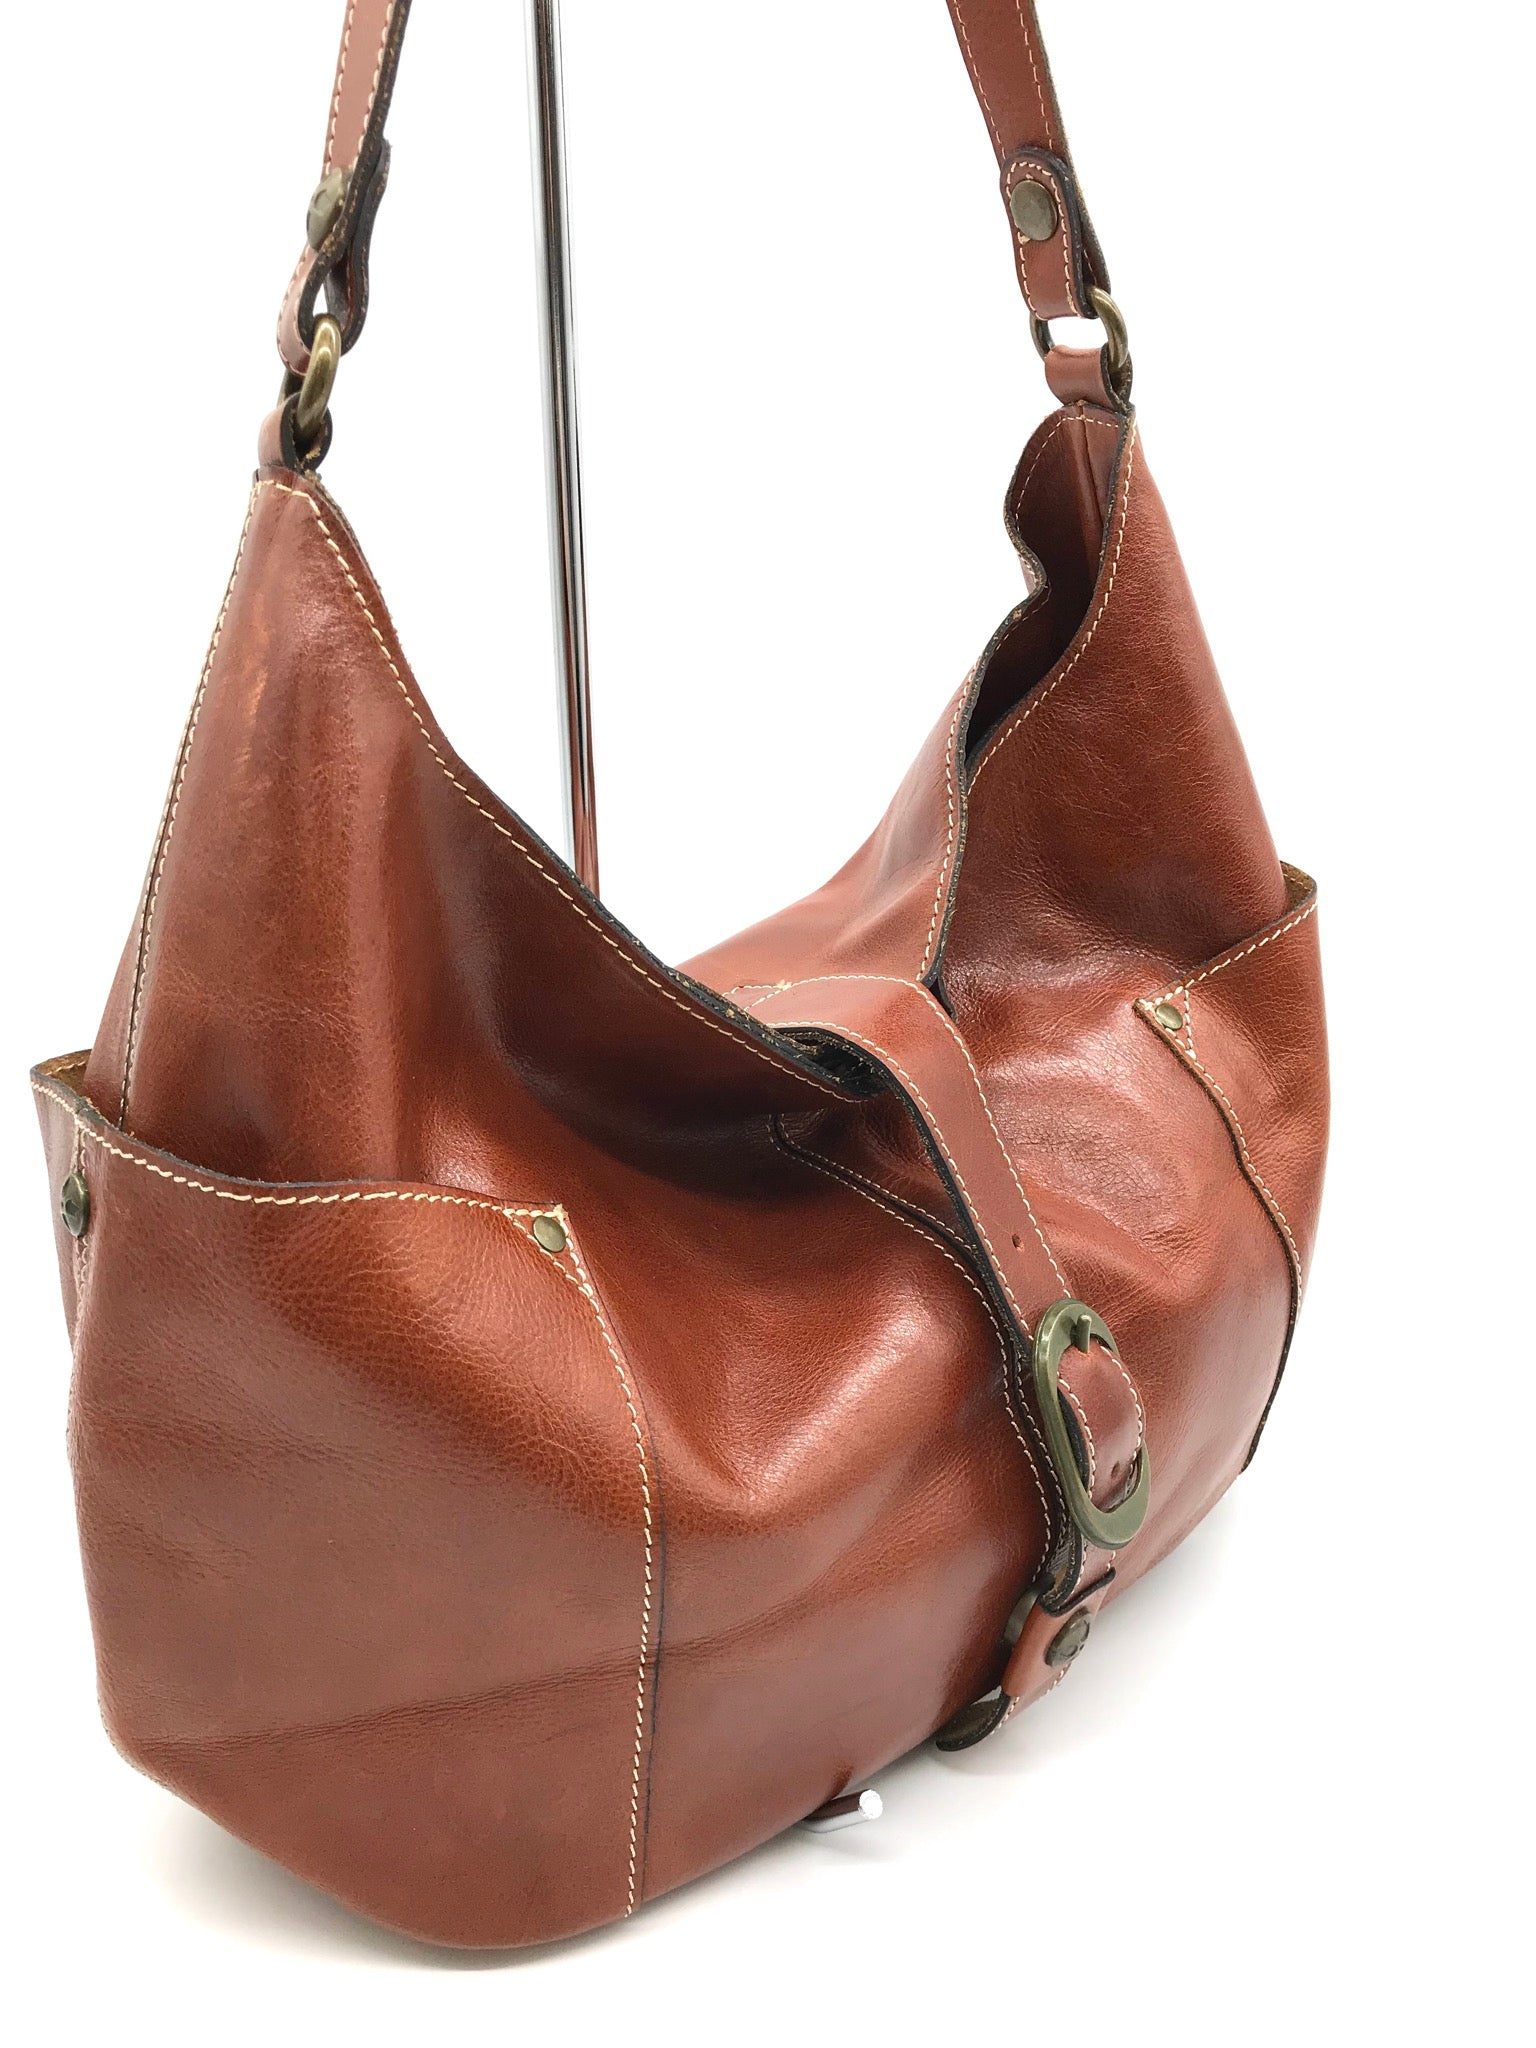 Photo #2 - BRAND: PATRICIA NASH <BR>STYLE: HANDBAG <BR>COLOR: BROWN <BR>SIZE: MEDIUM <BR>SKU: 262-26275-64345<BR>GENTLE WEAR SHOWS AS BOTTOM CORNERS - AS IS